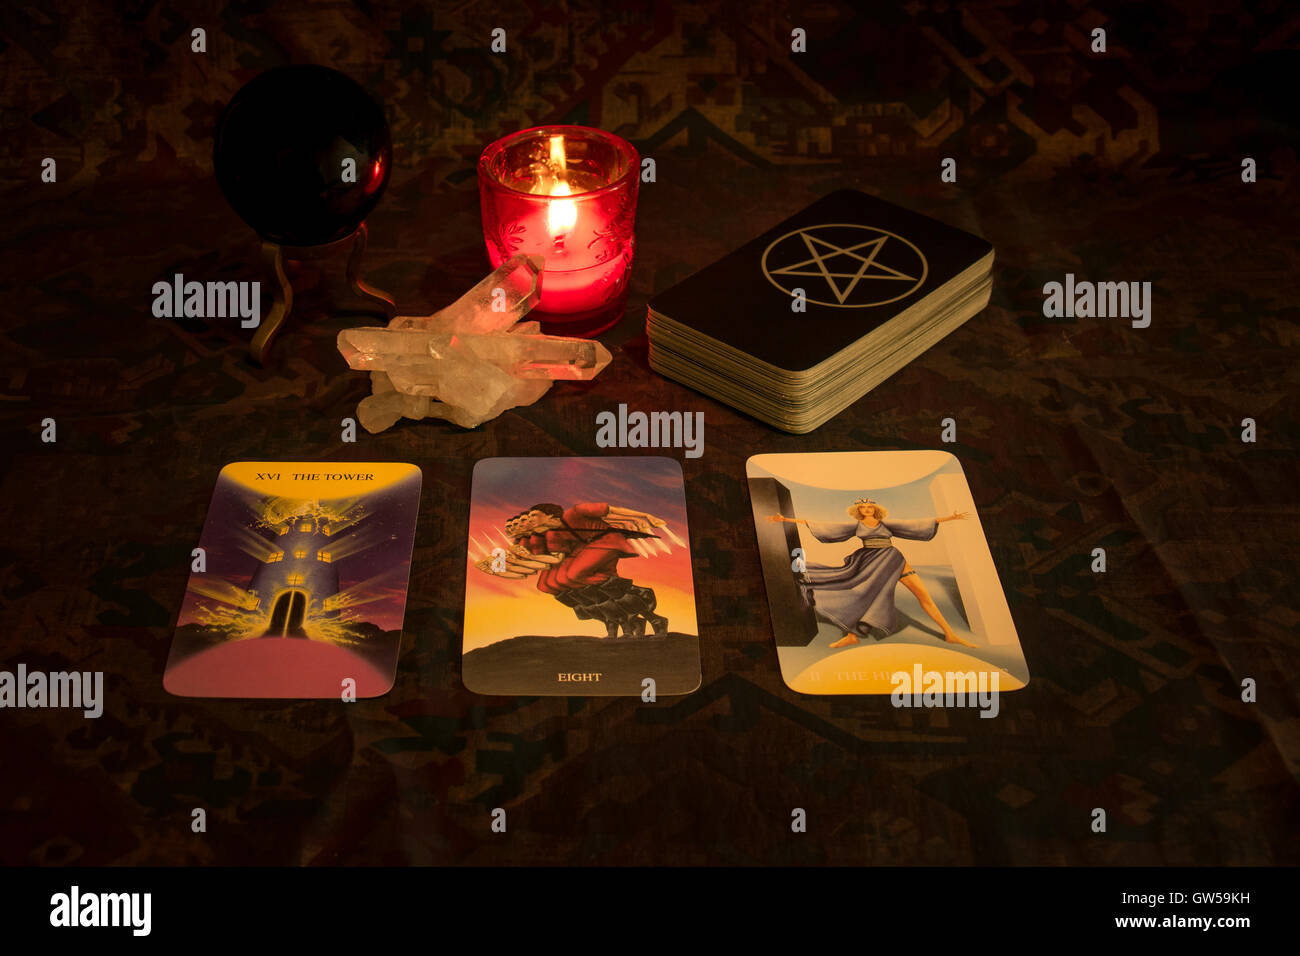 Fortune telling - Stock Image